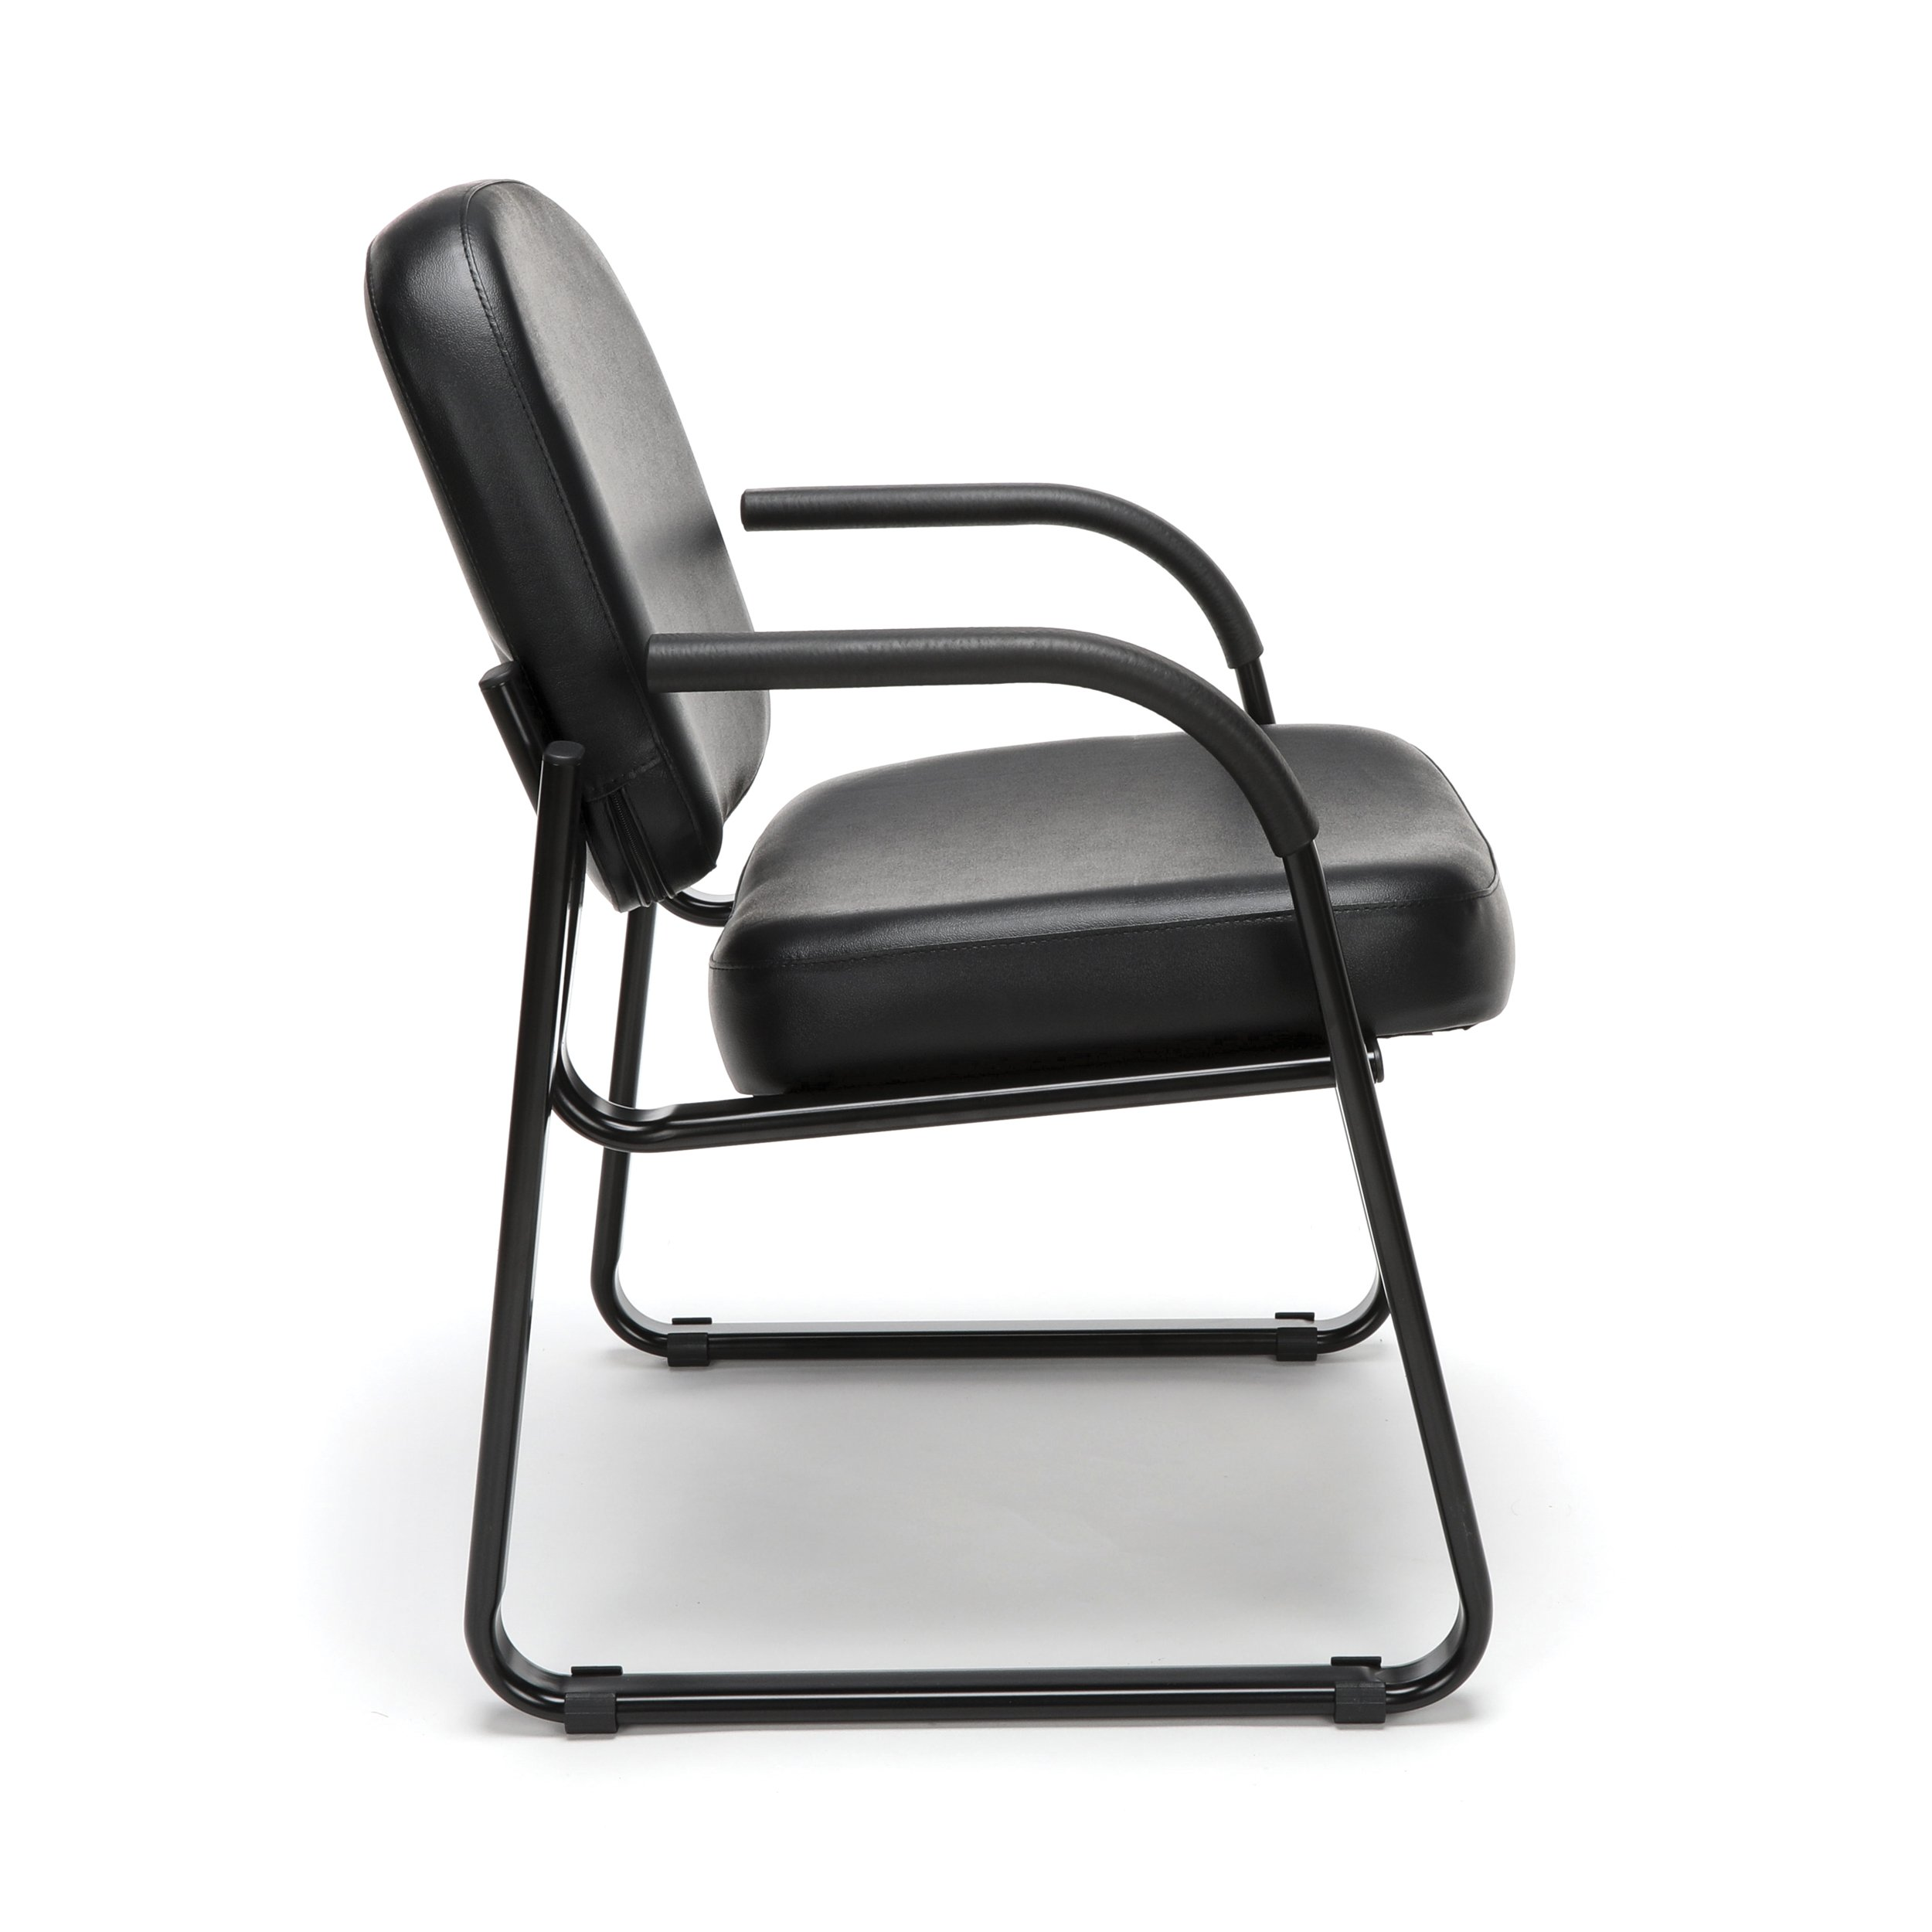 OFM Model 403-VAM Guest and Reception Chair with Arms, Anti-Microbial/Anti-Bacterial Vinyl, Black by OFM (Image #3)